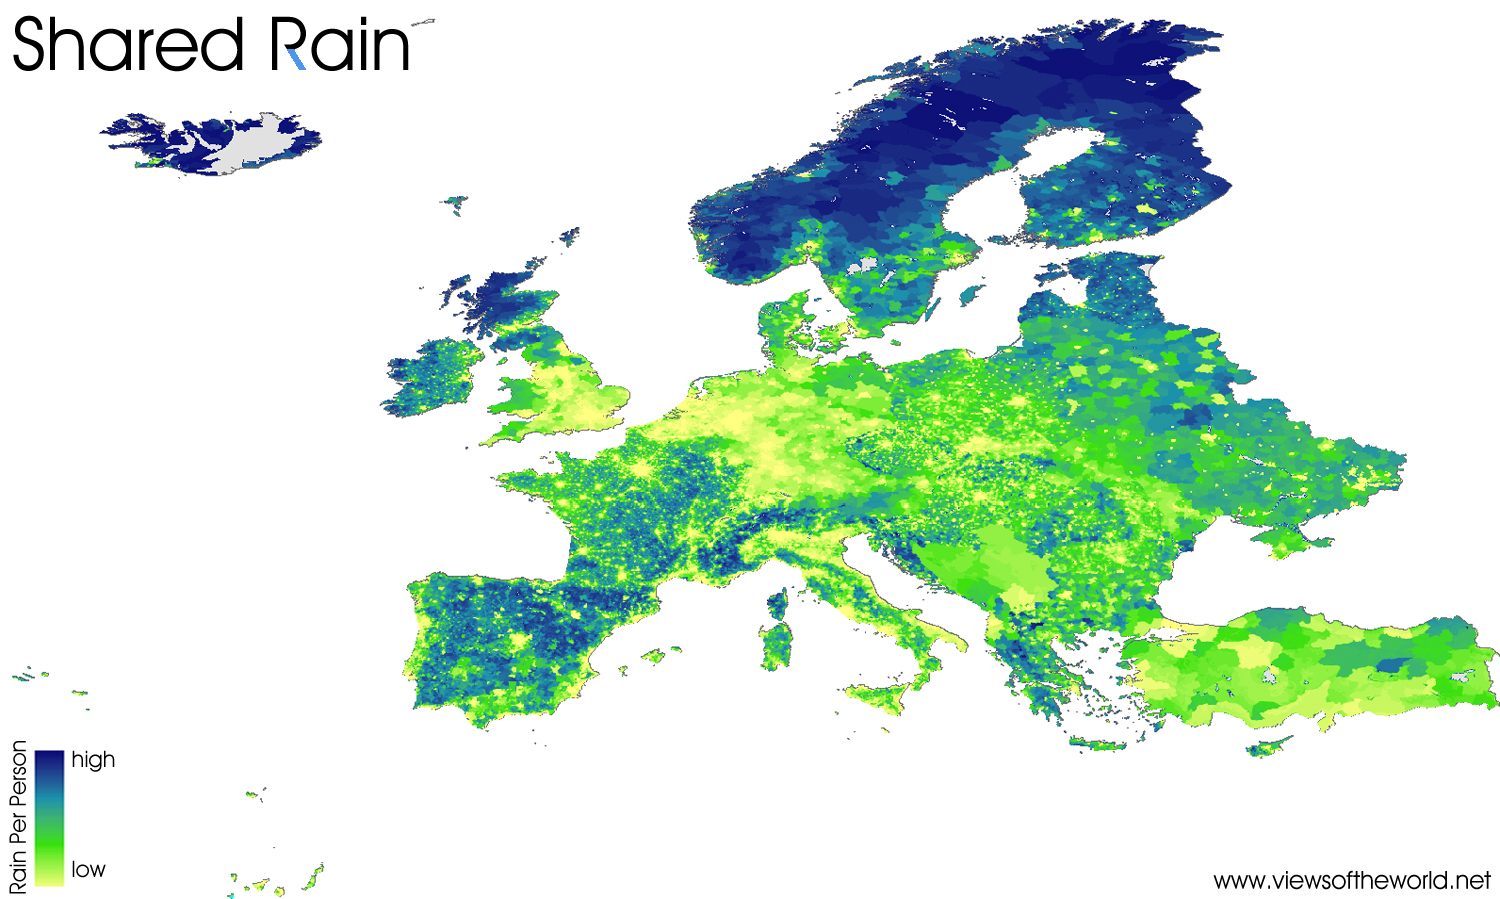 Precipitation World Map.Shared Rain Views Of The World